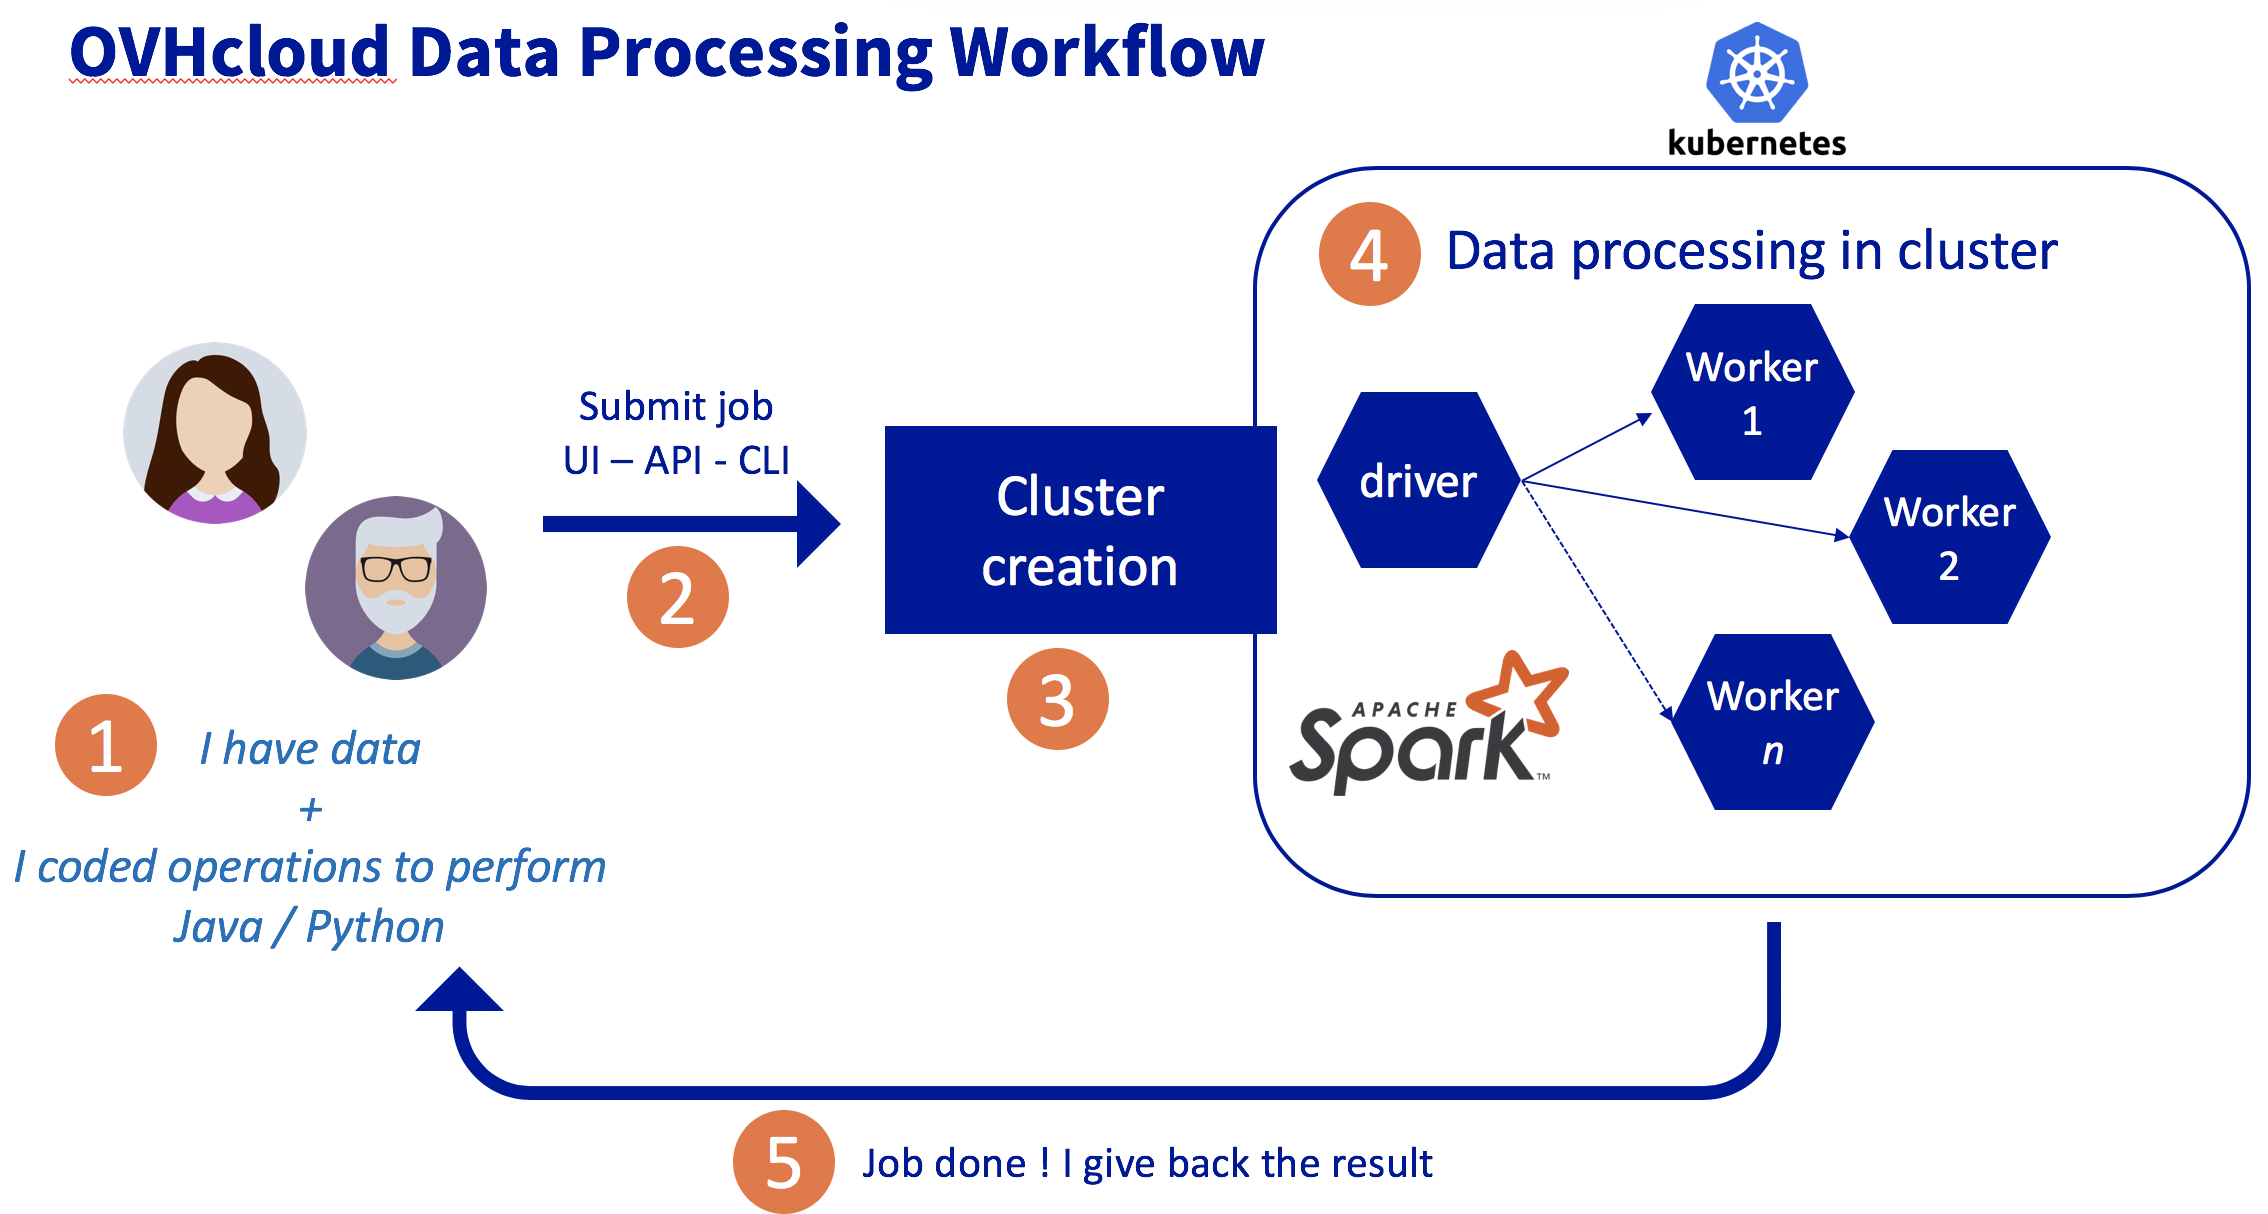 OVHcloud Data Processing workflow